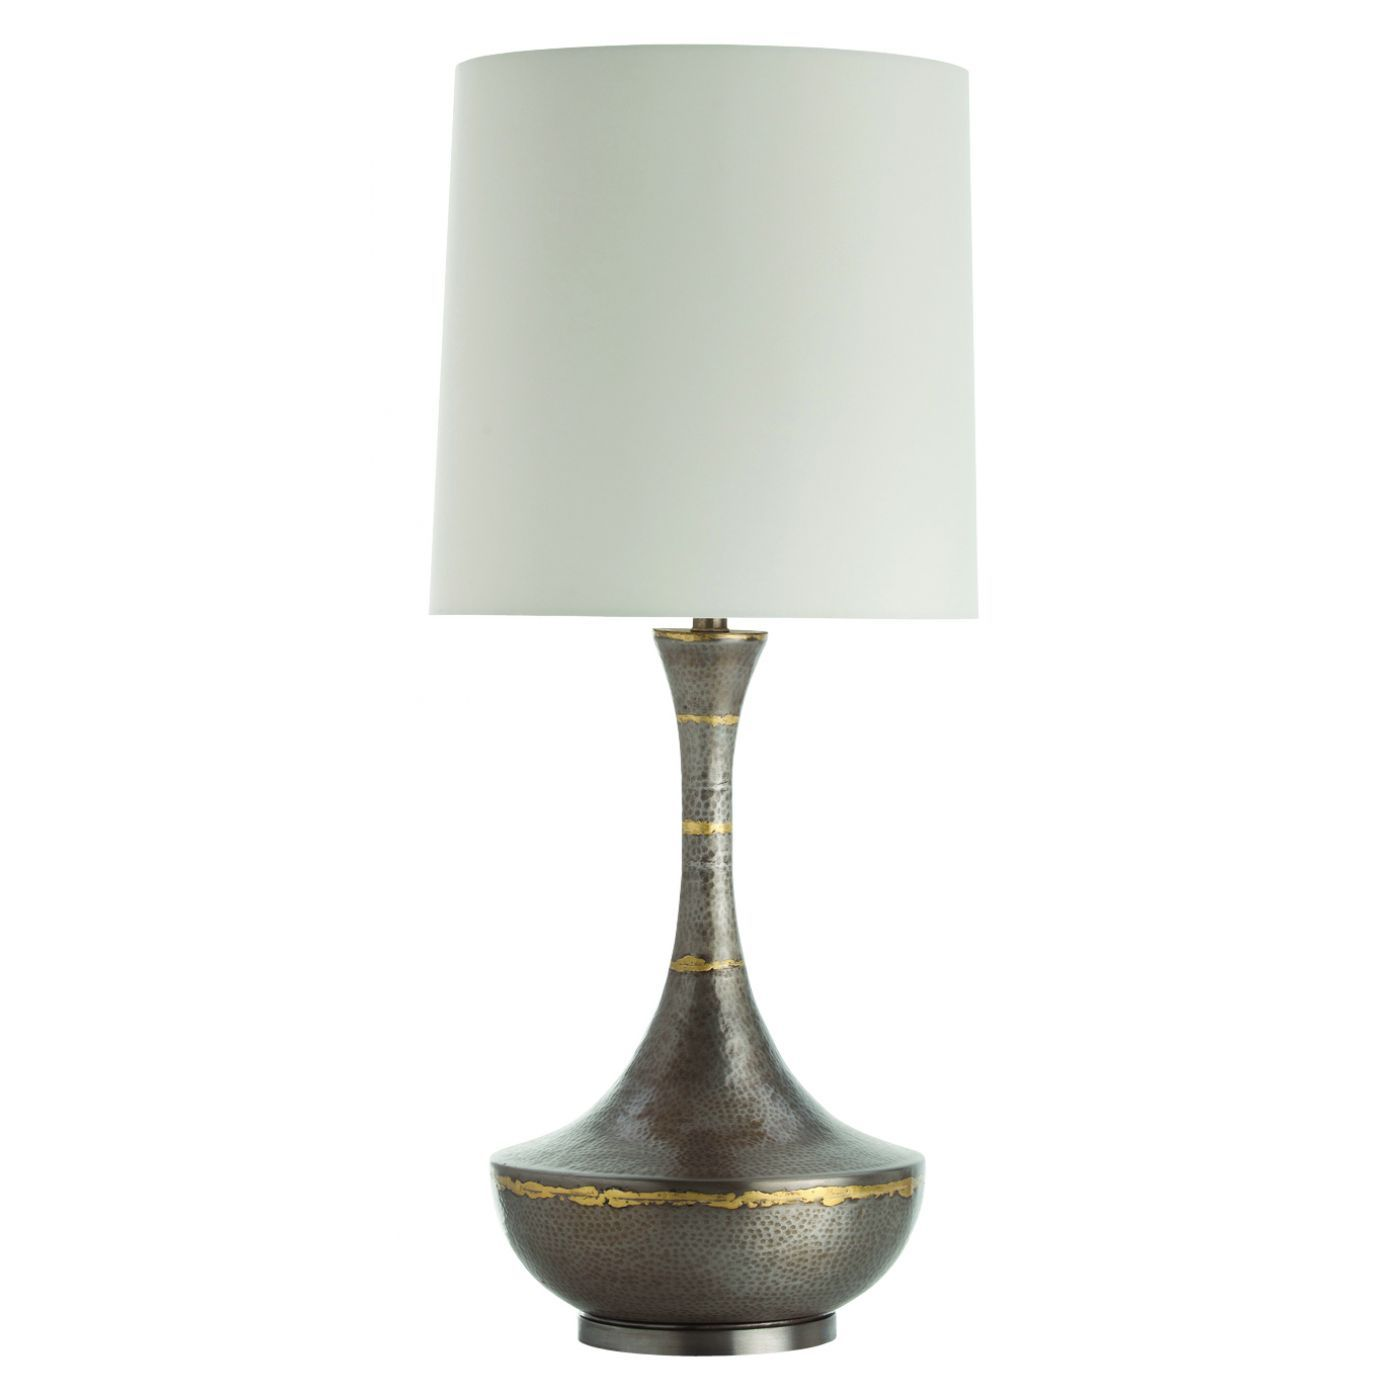 An iron table lamp with a tapered vase body featuring brass an iron table lamp with a tapered vase body featuring brass colored ring details topped geotapseo Choice Image